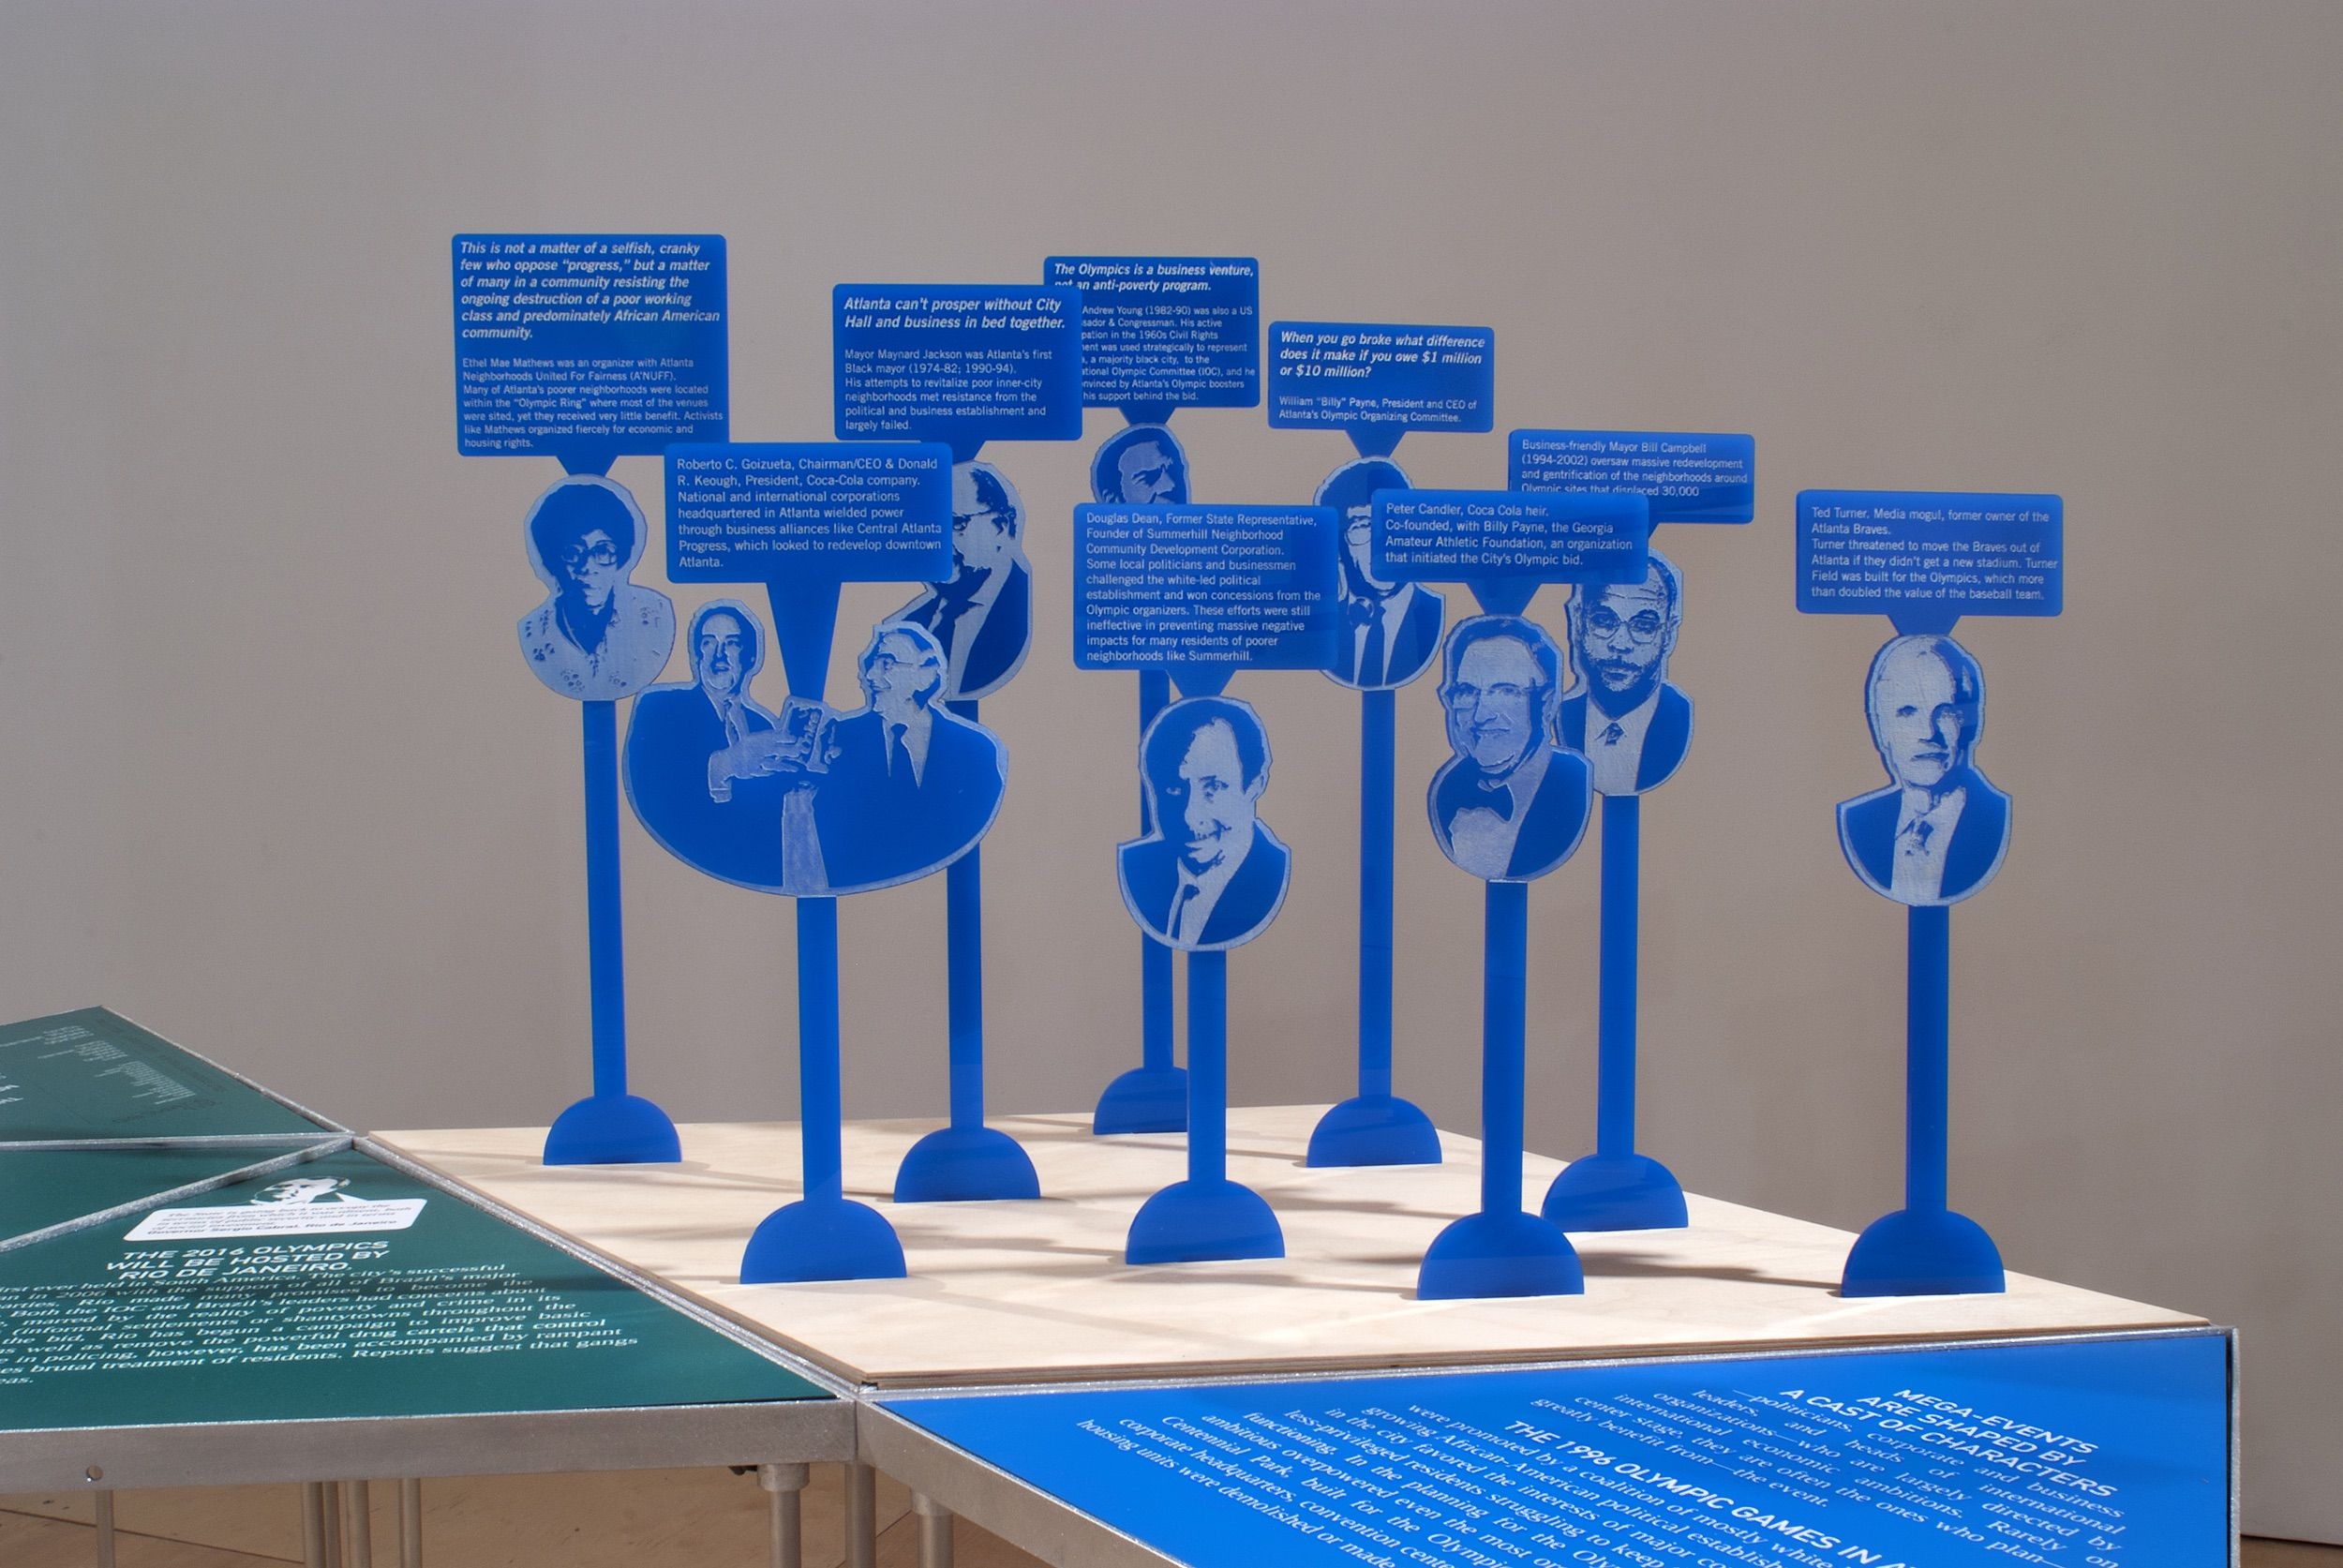 Installation at Gallery 400, UIC 2012